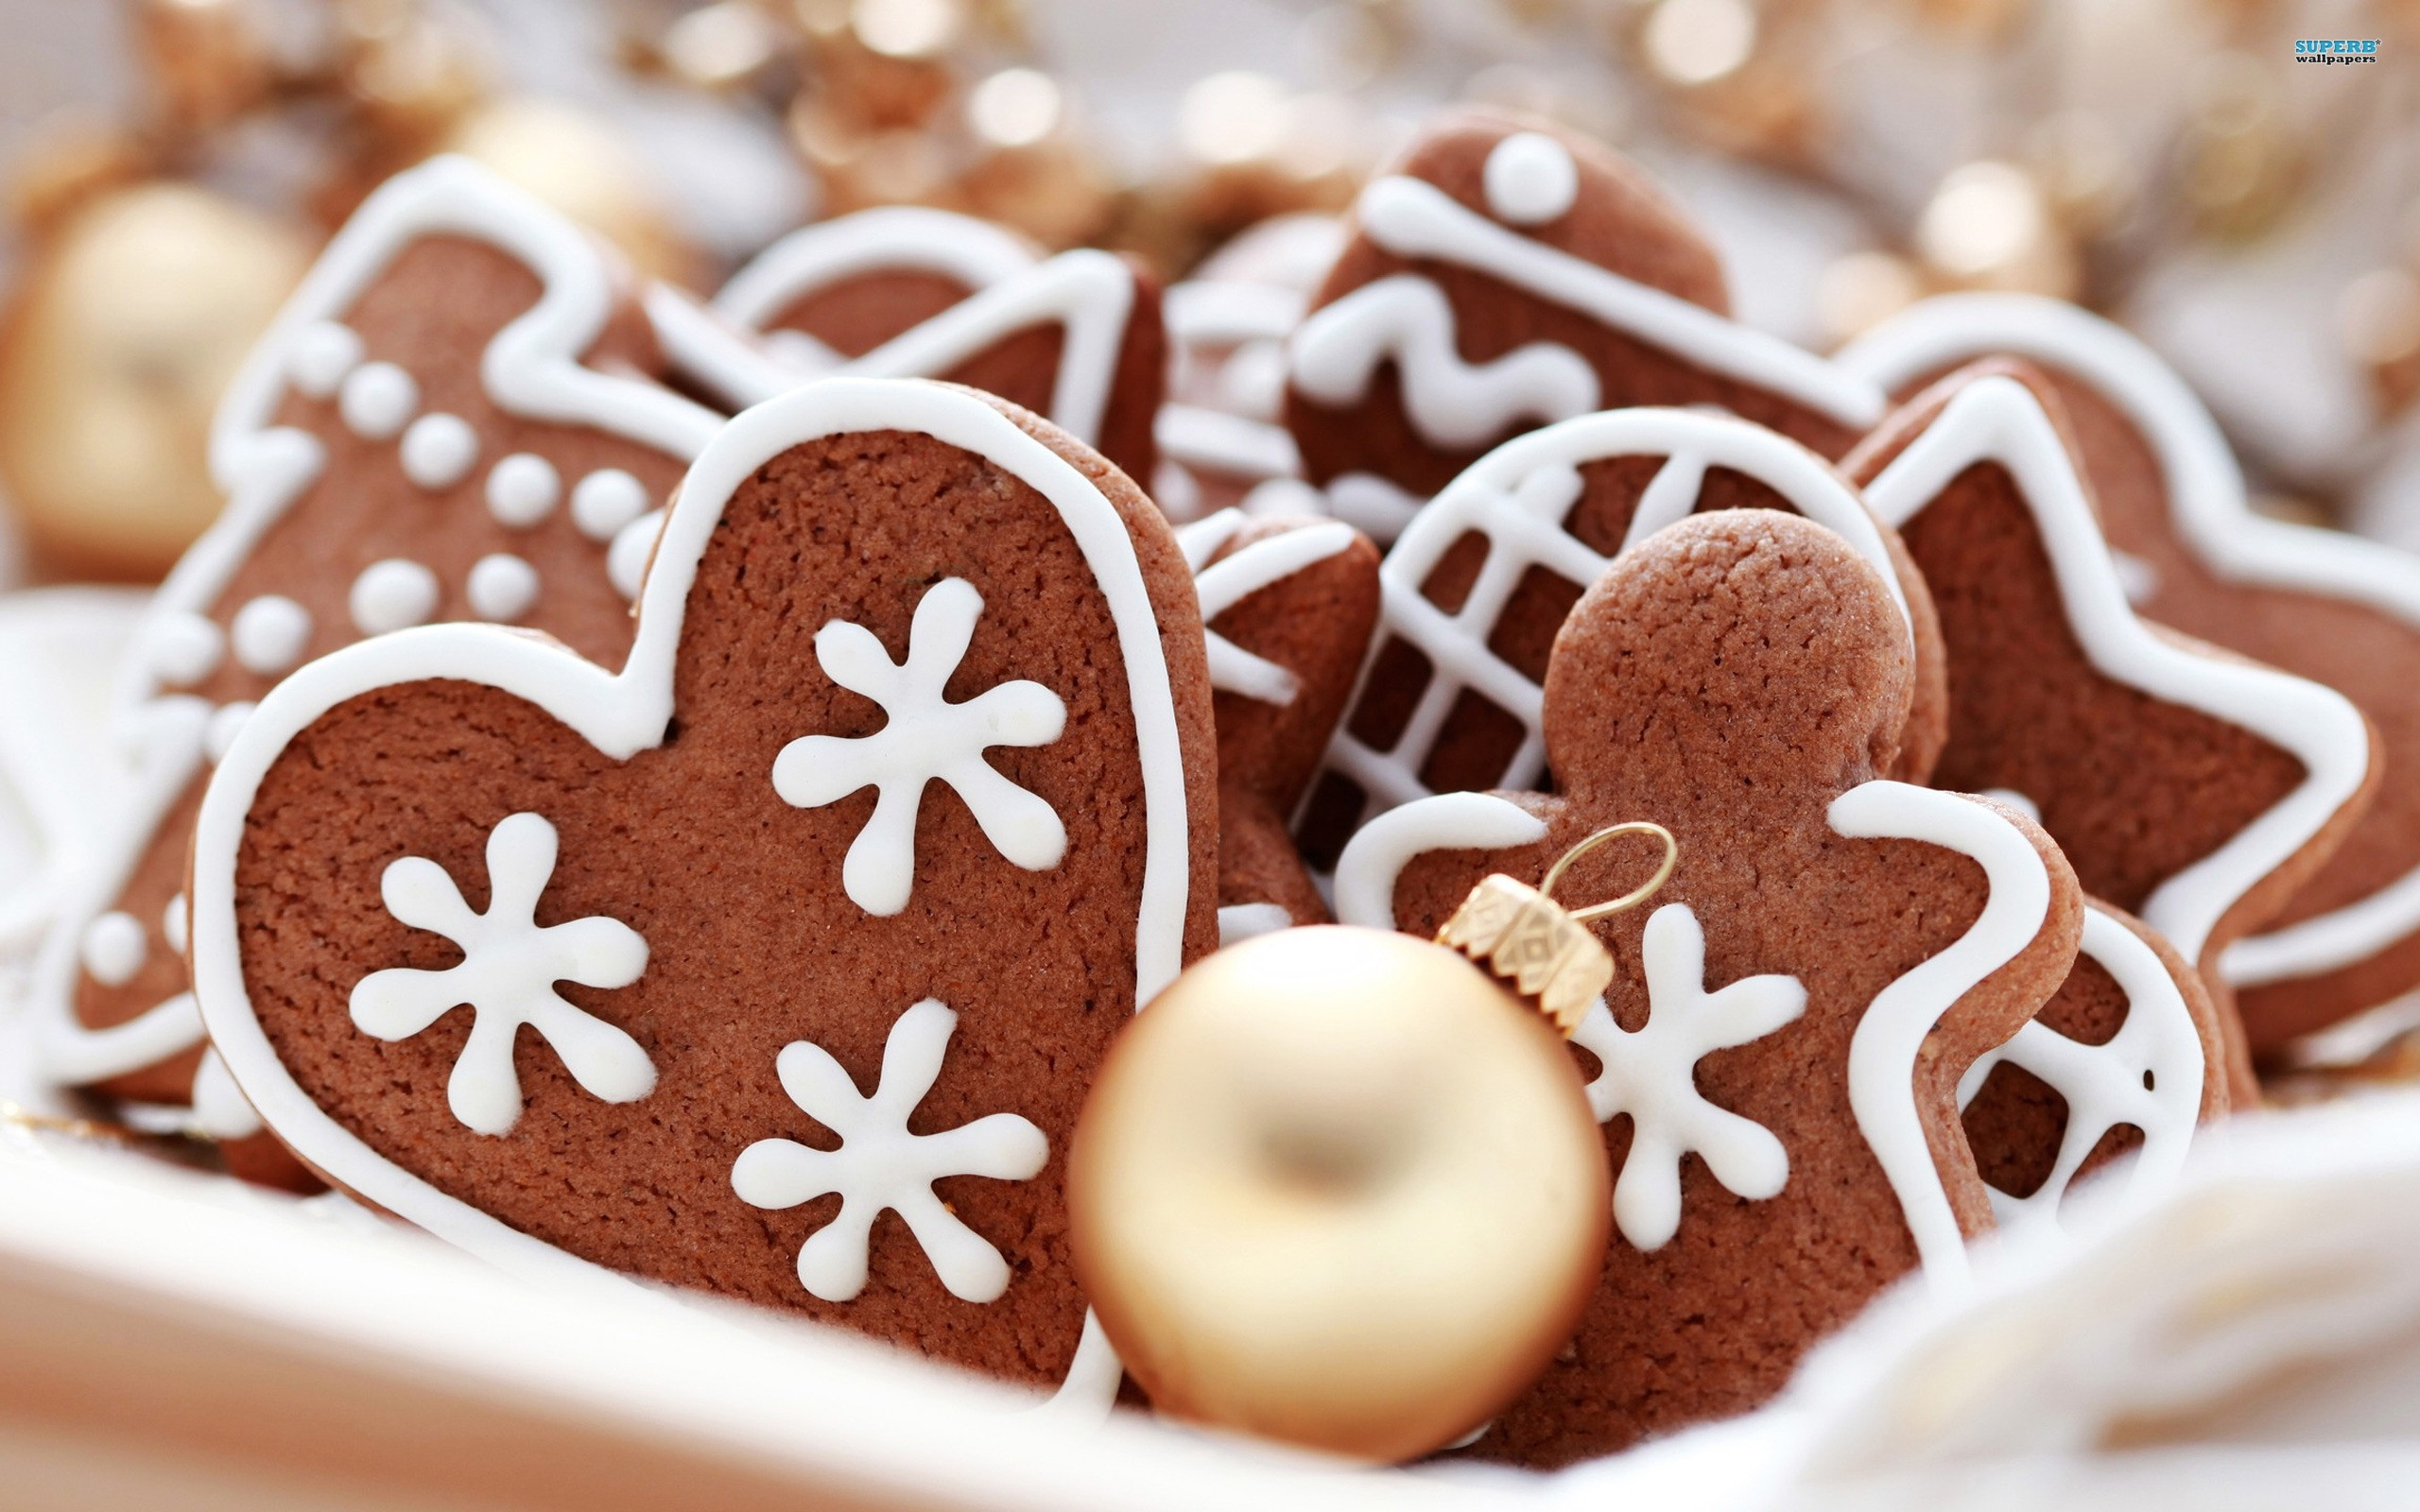 ws_gingerbread_cookies_2560x1600.jpg